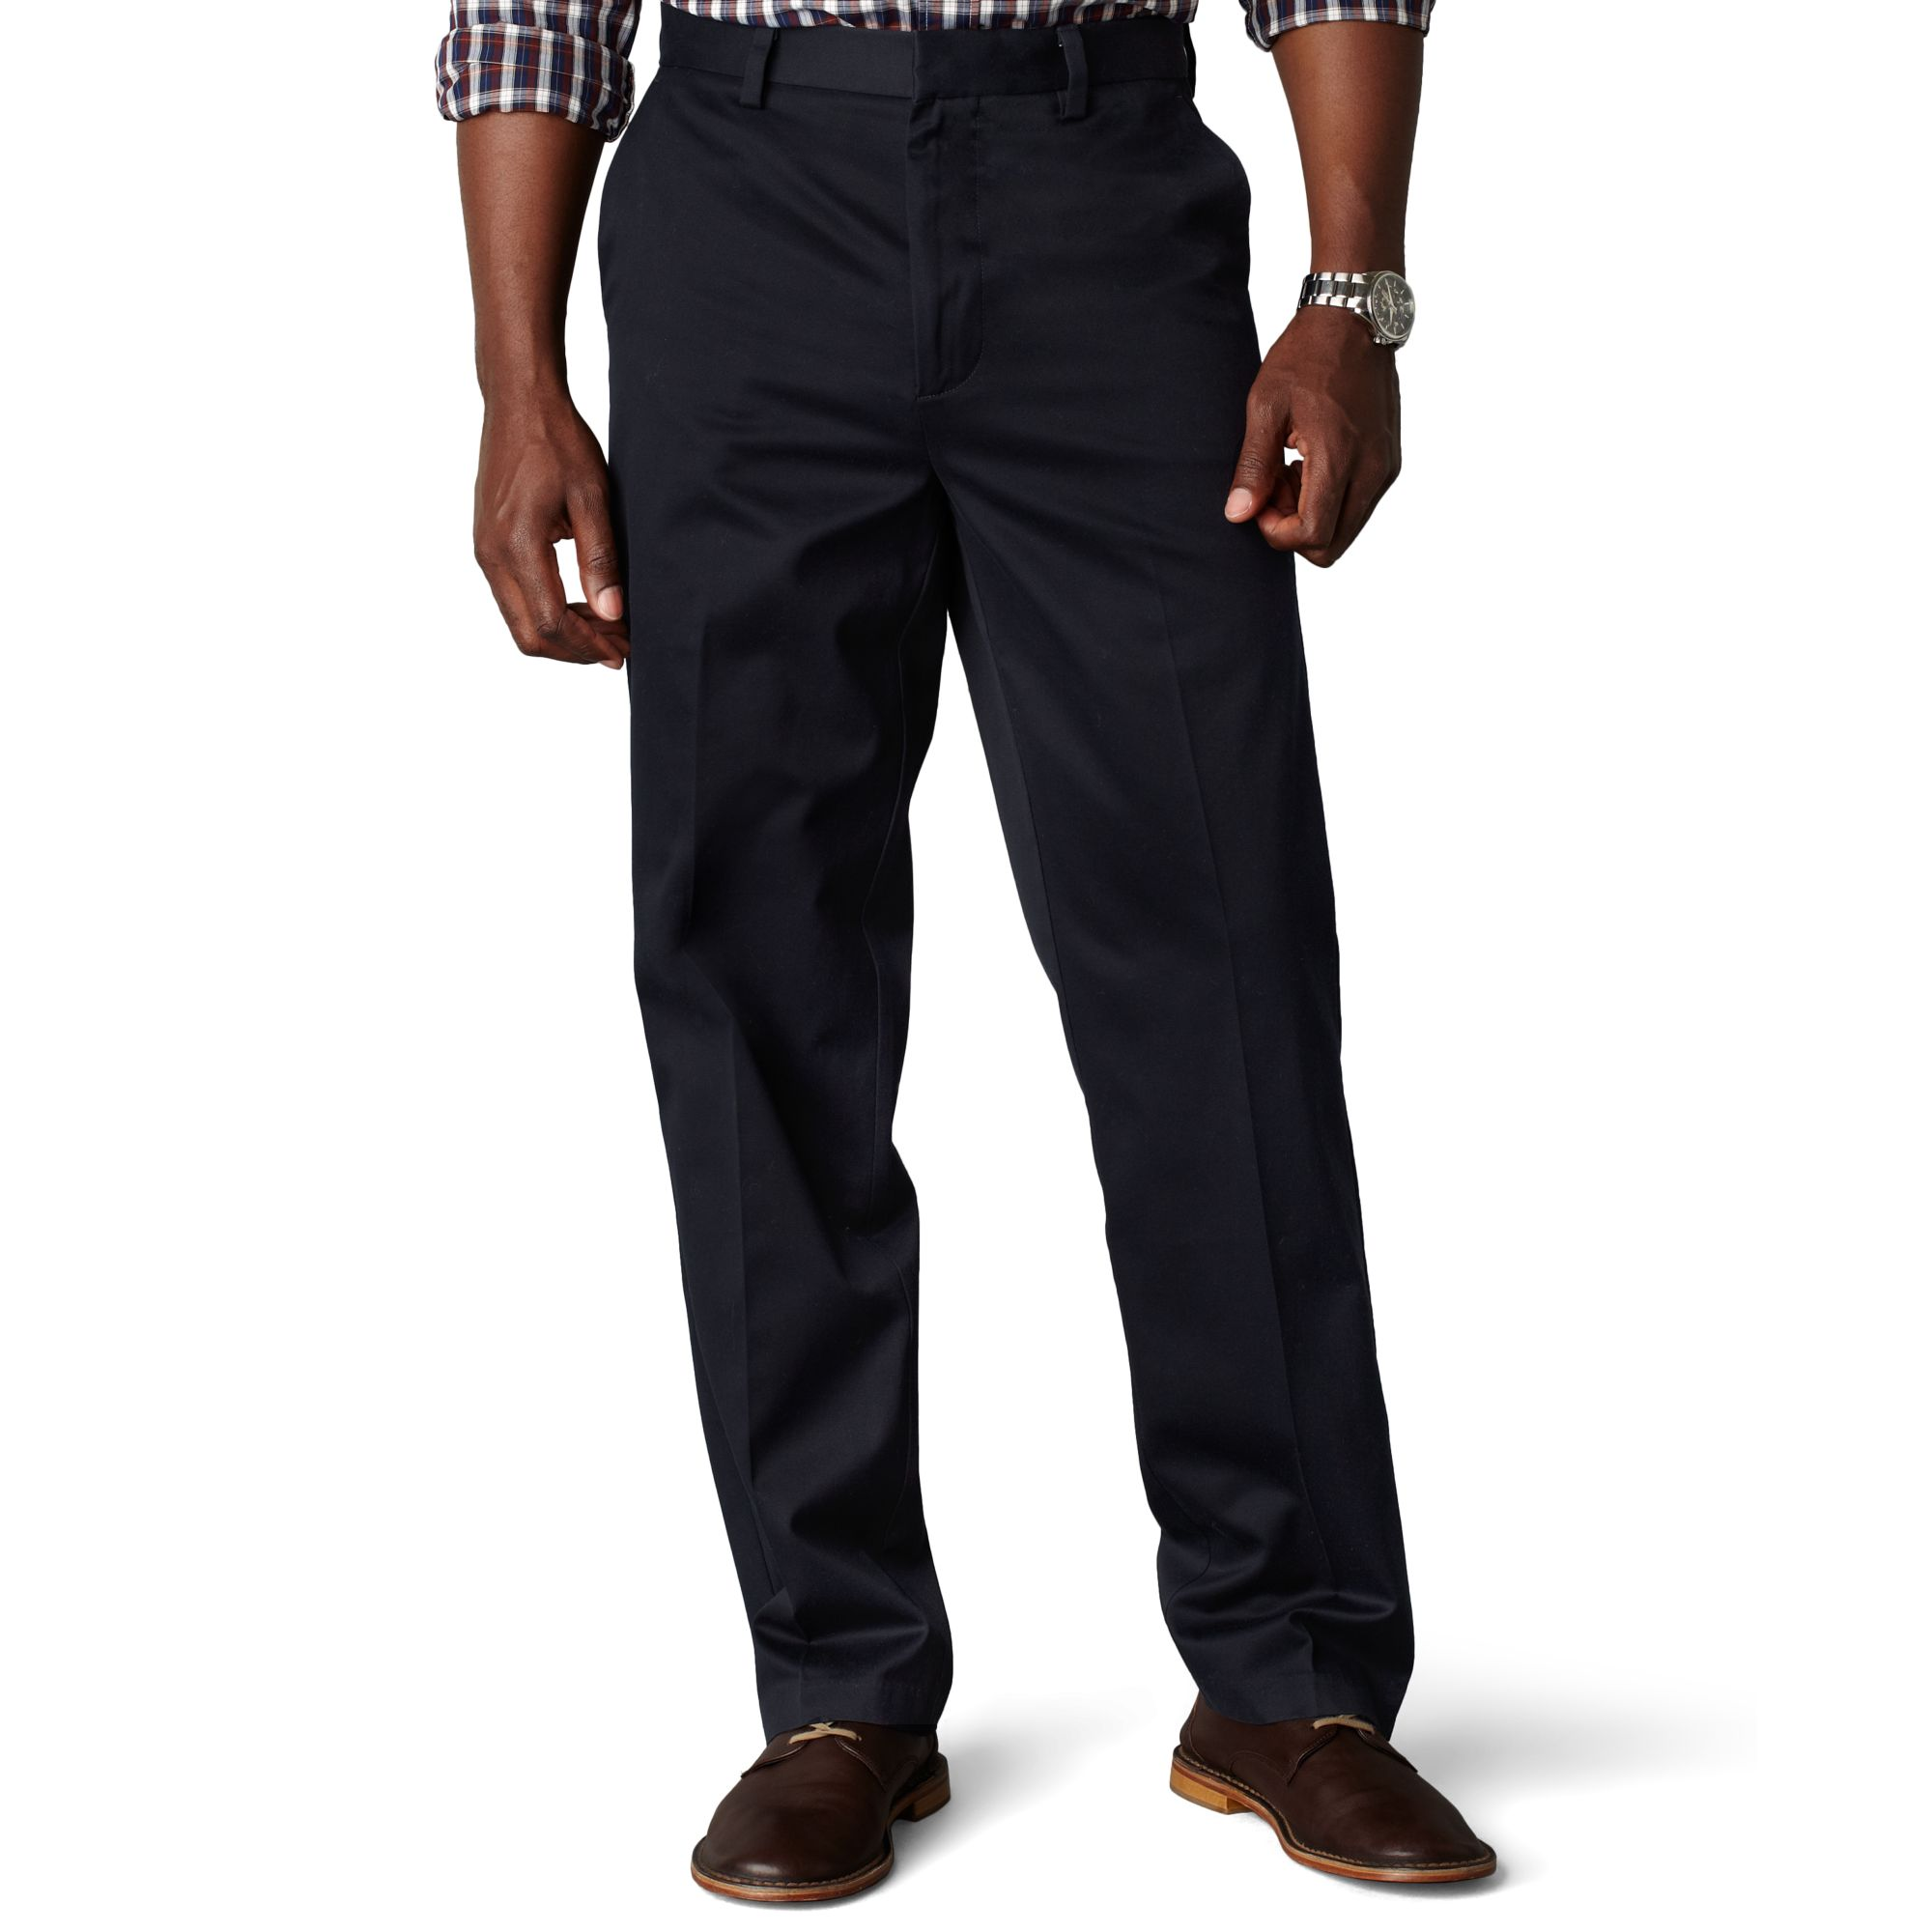 levis dockers Men's clothing from dockers features updated classic styles of pants, shirts,  sweaters, jackets, and more shop dress or casual clothes for men at dockers.